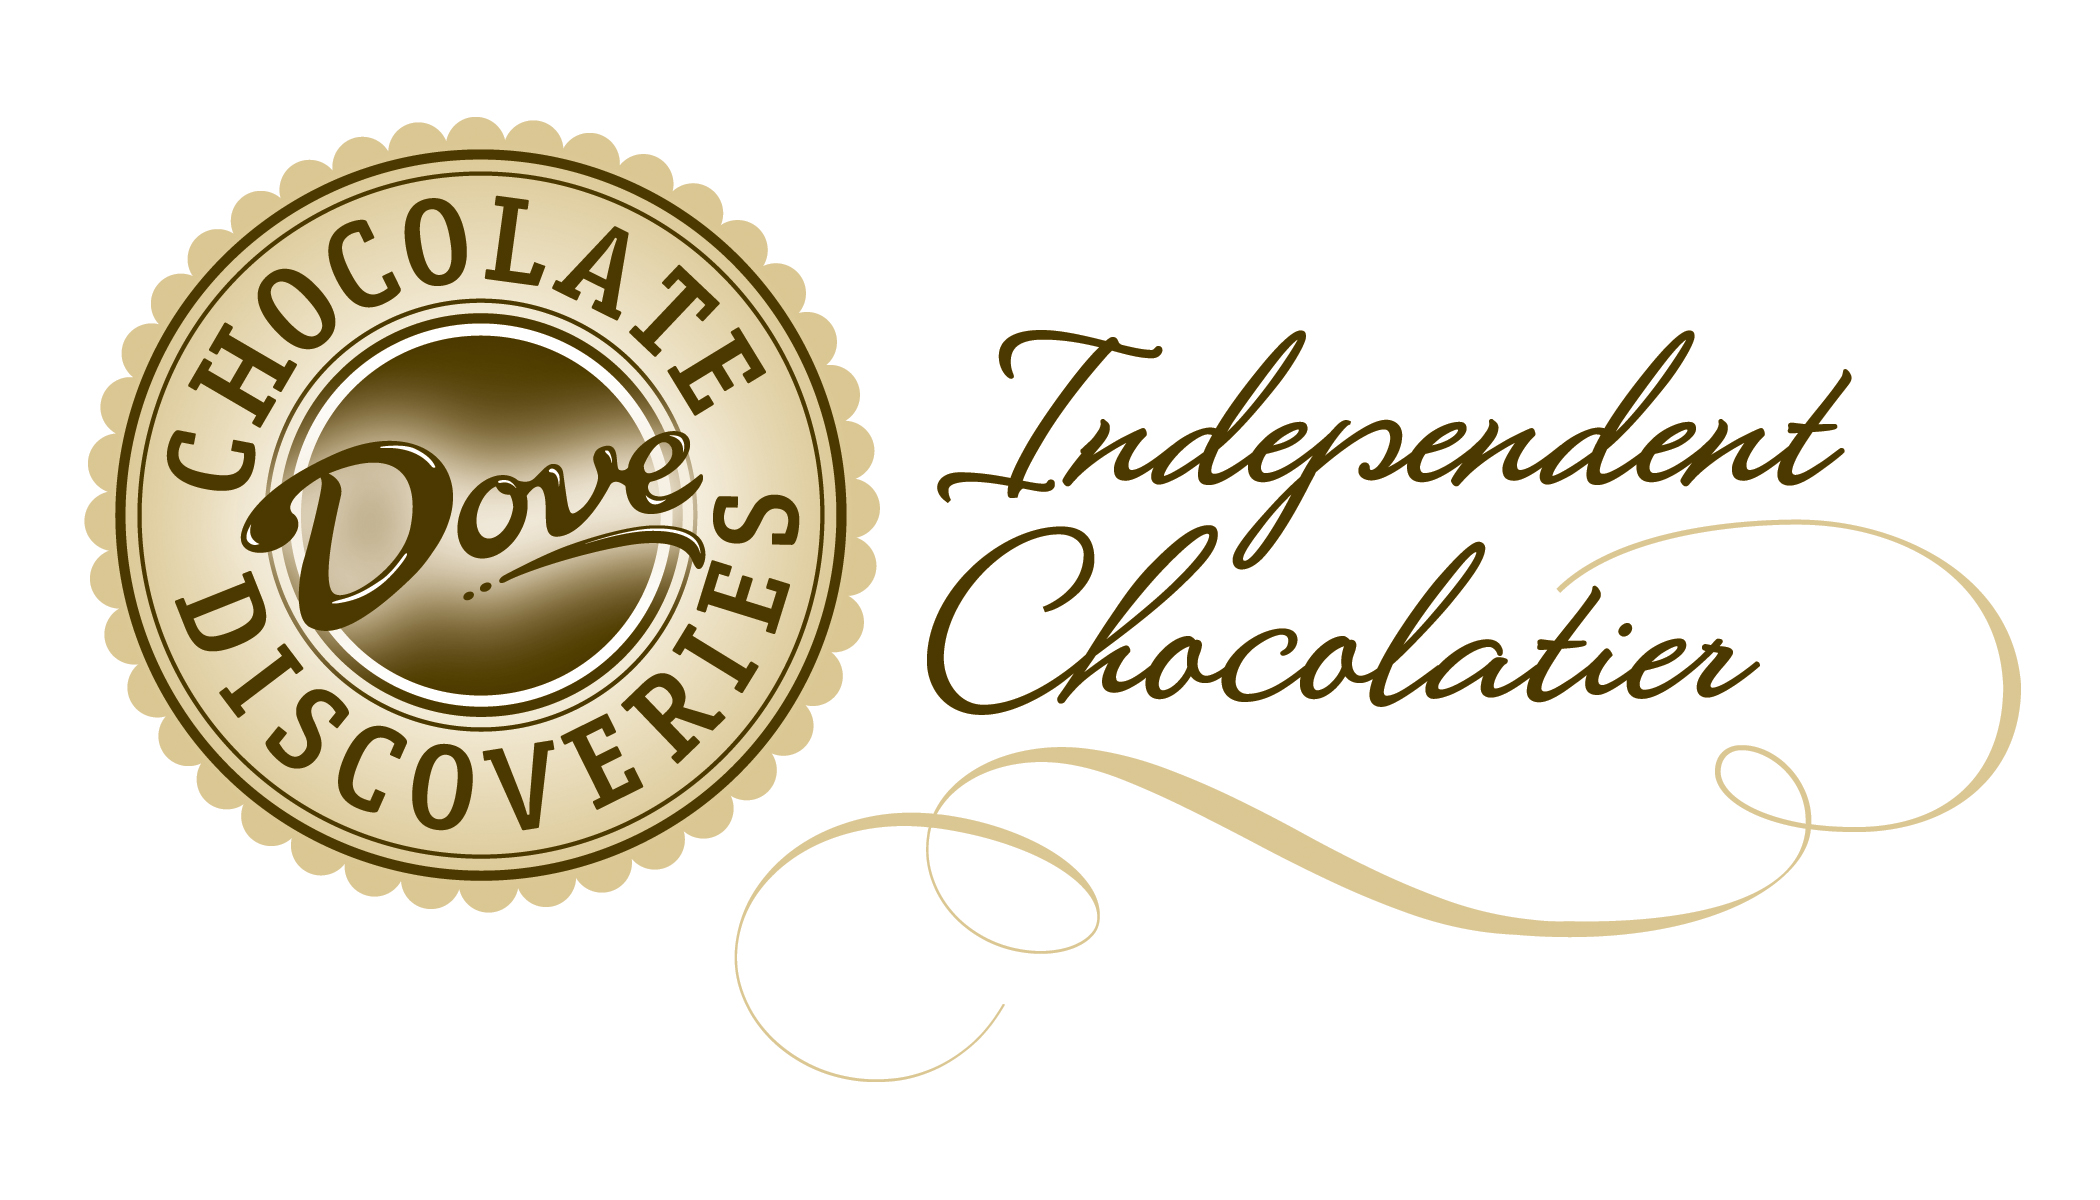 Dove chocolate discoveries products - photo#23